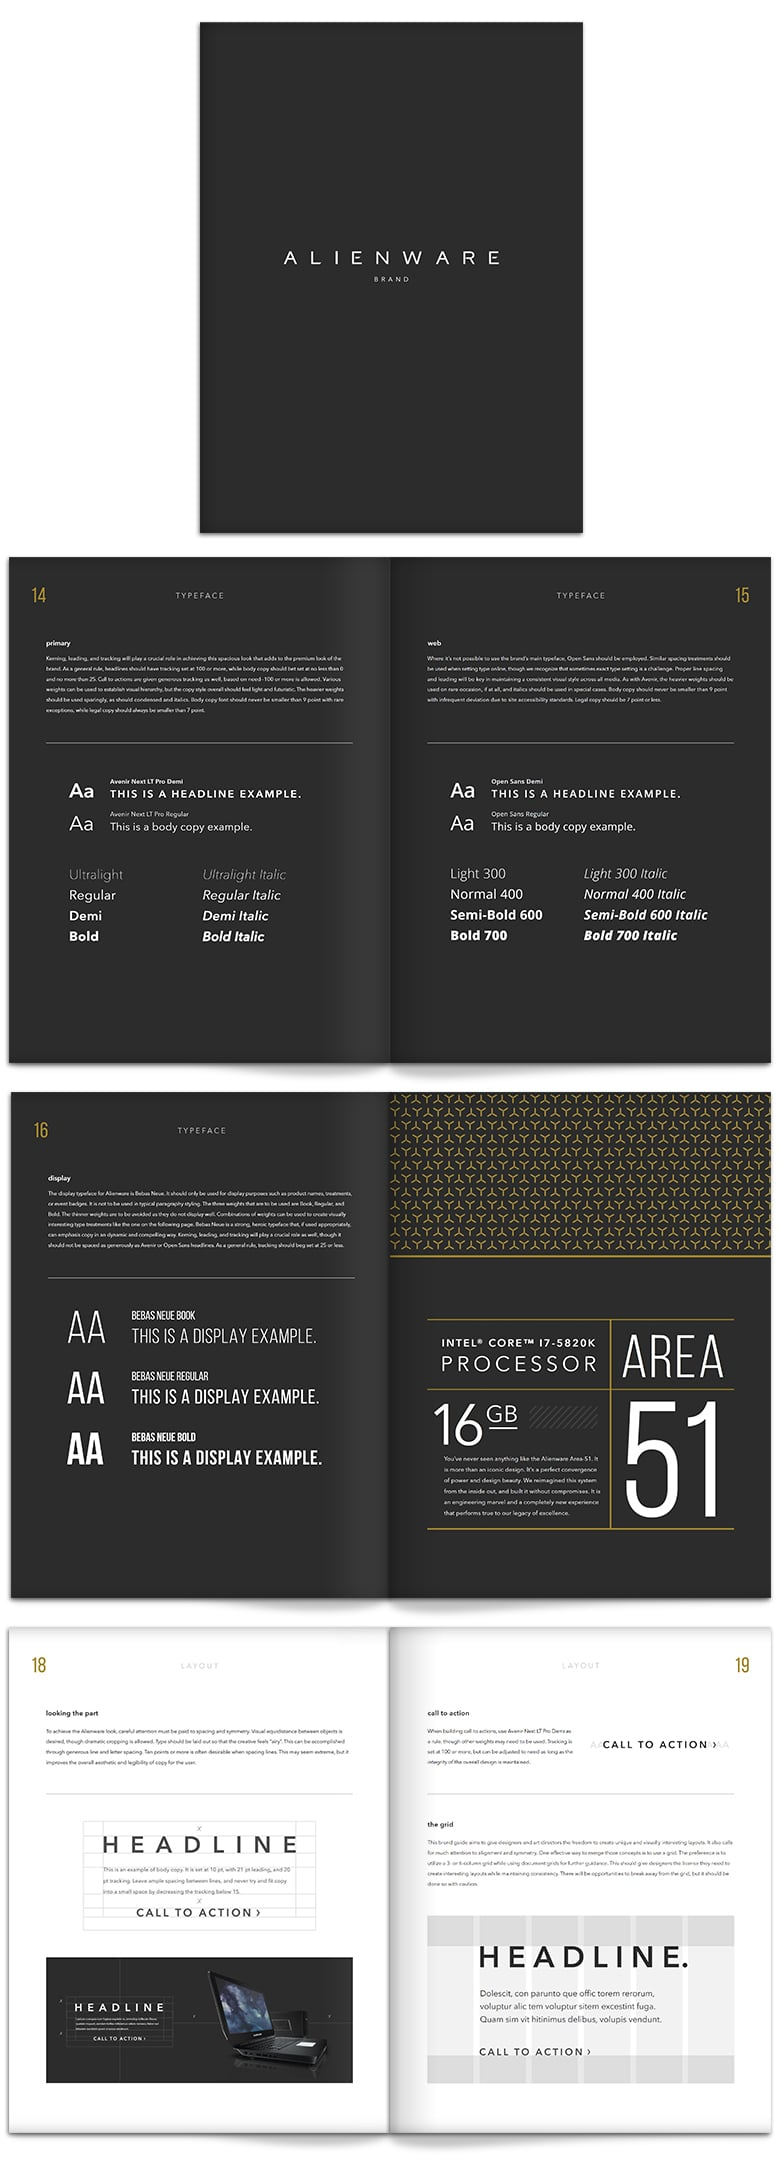 Alienware Brand Guidelines for fonts